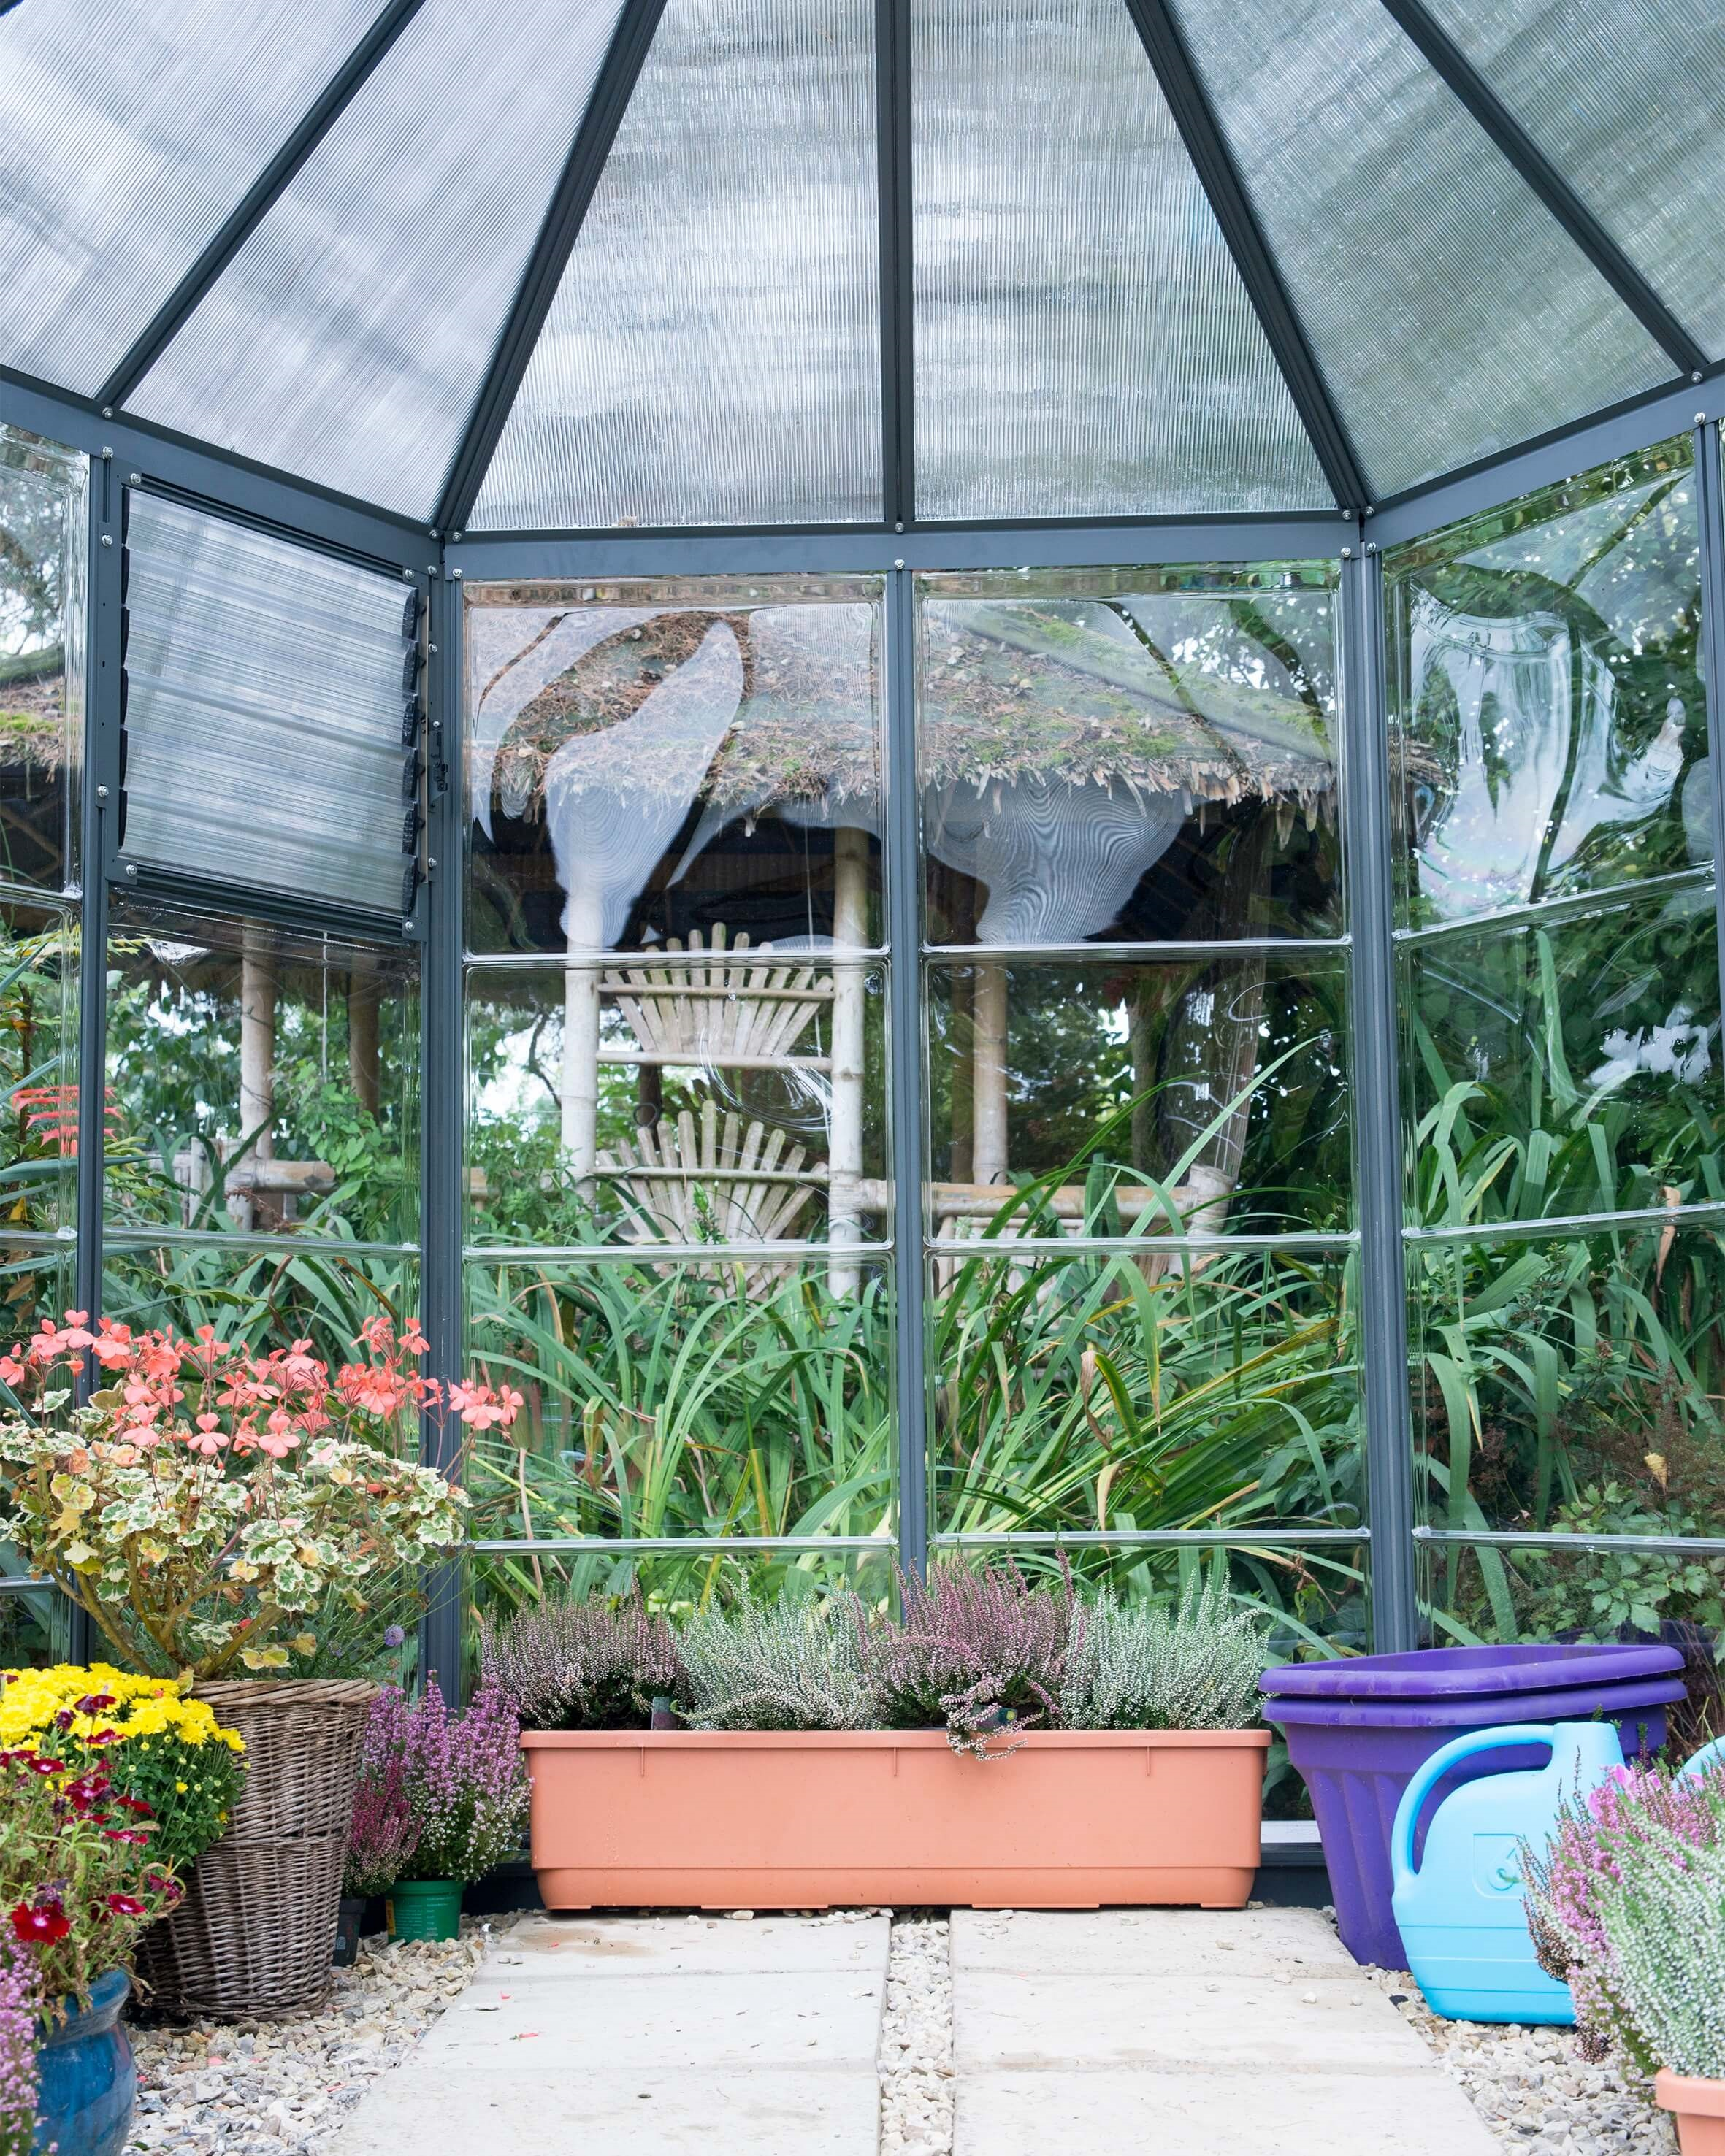 Interior View of Hexagonal greenhouse